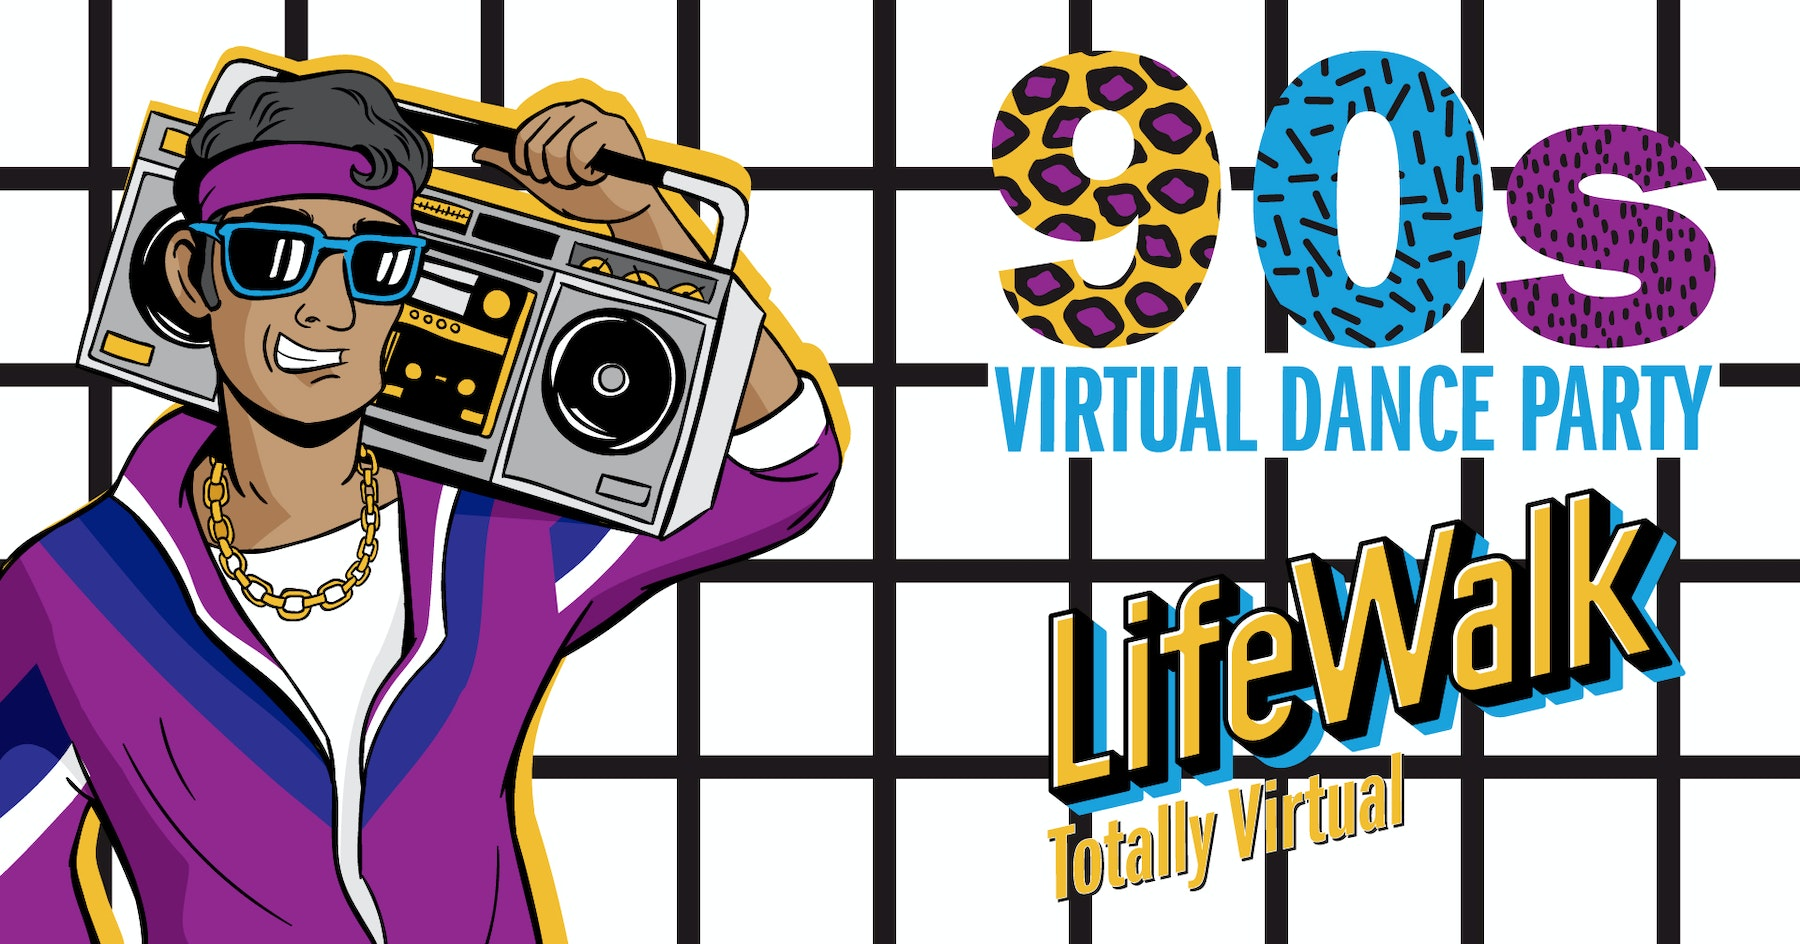 90s Virtual Dance Party